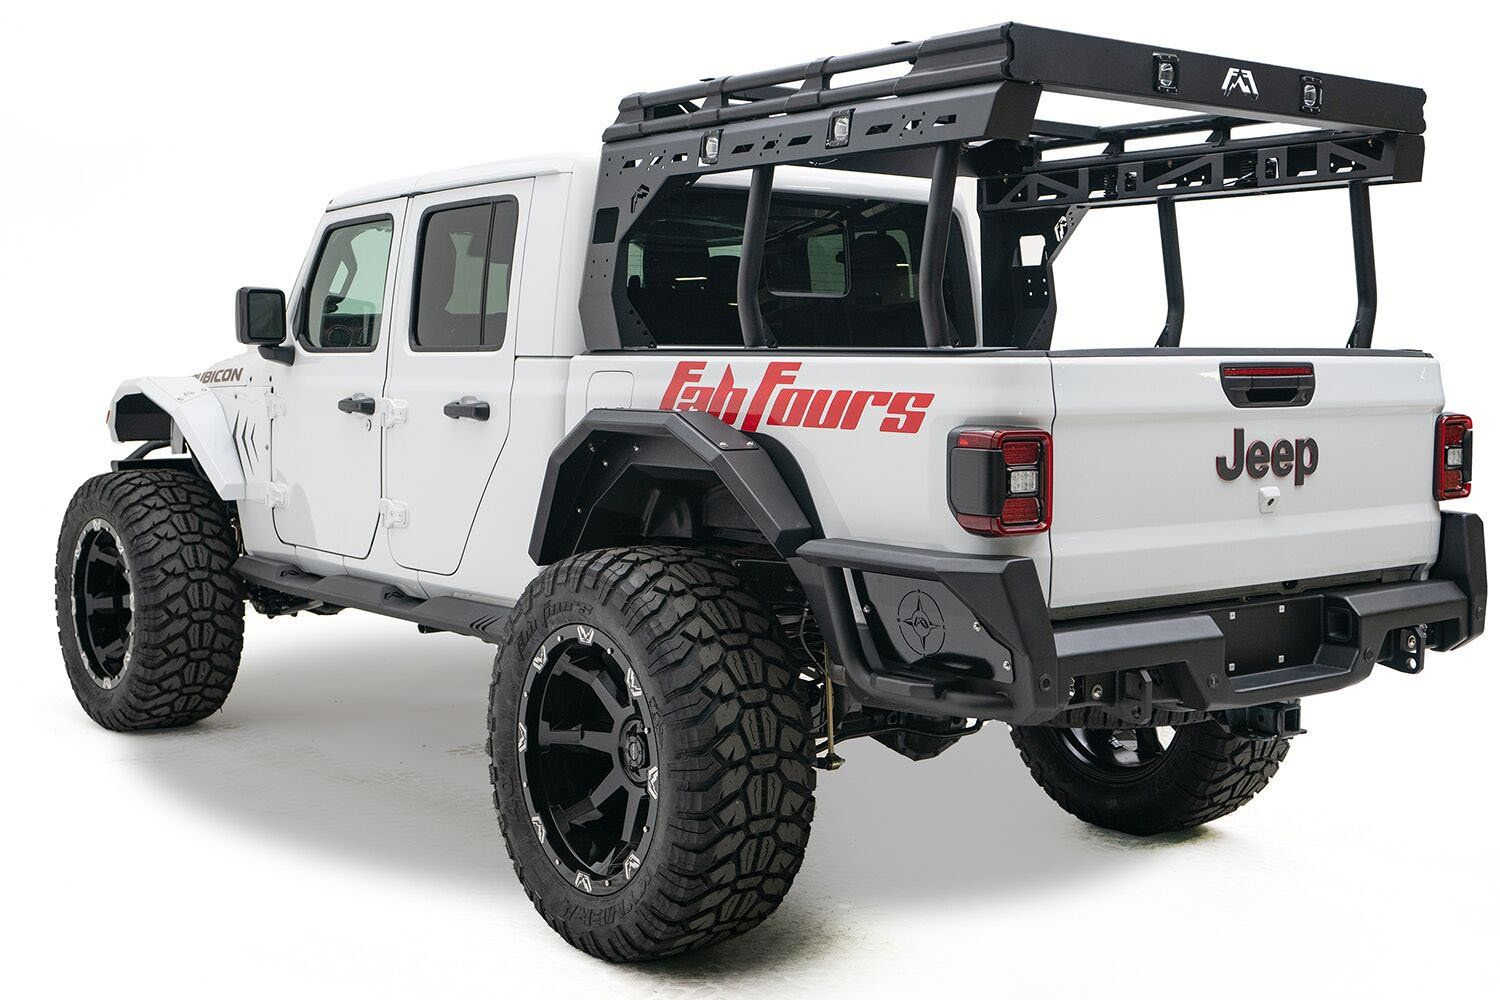 Fab Fours Overland Rack For 2020 Jeep Gladiator Jt Jeep Gladiator Jeep Jeep Wrangler Accessories